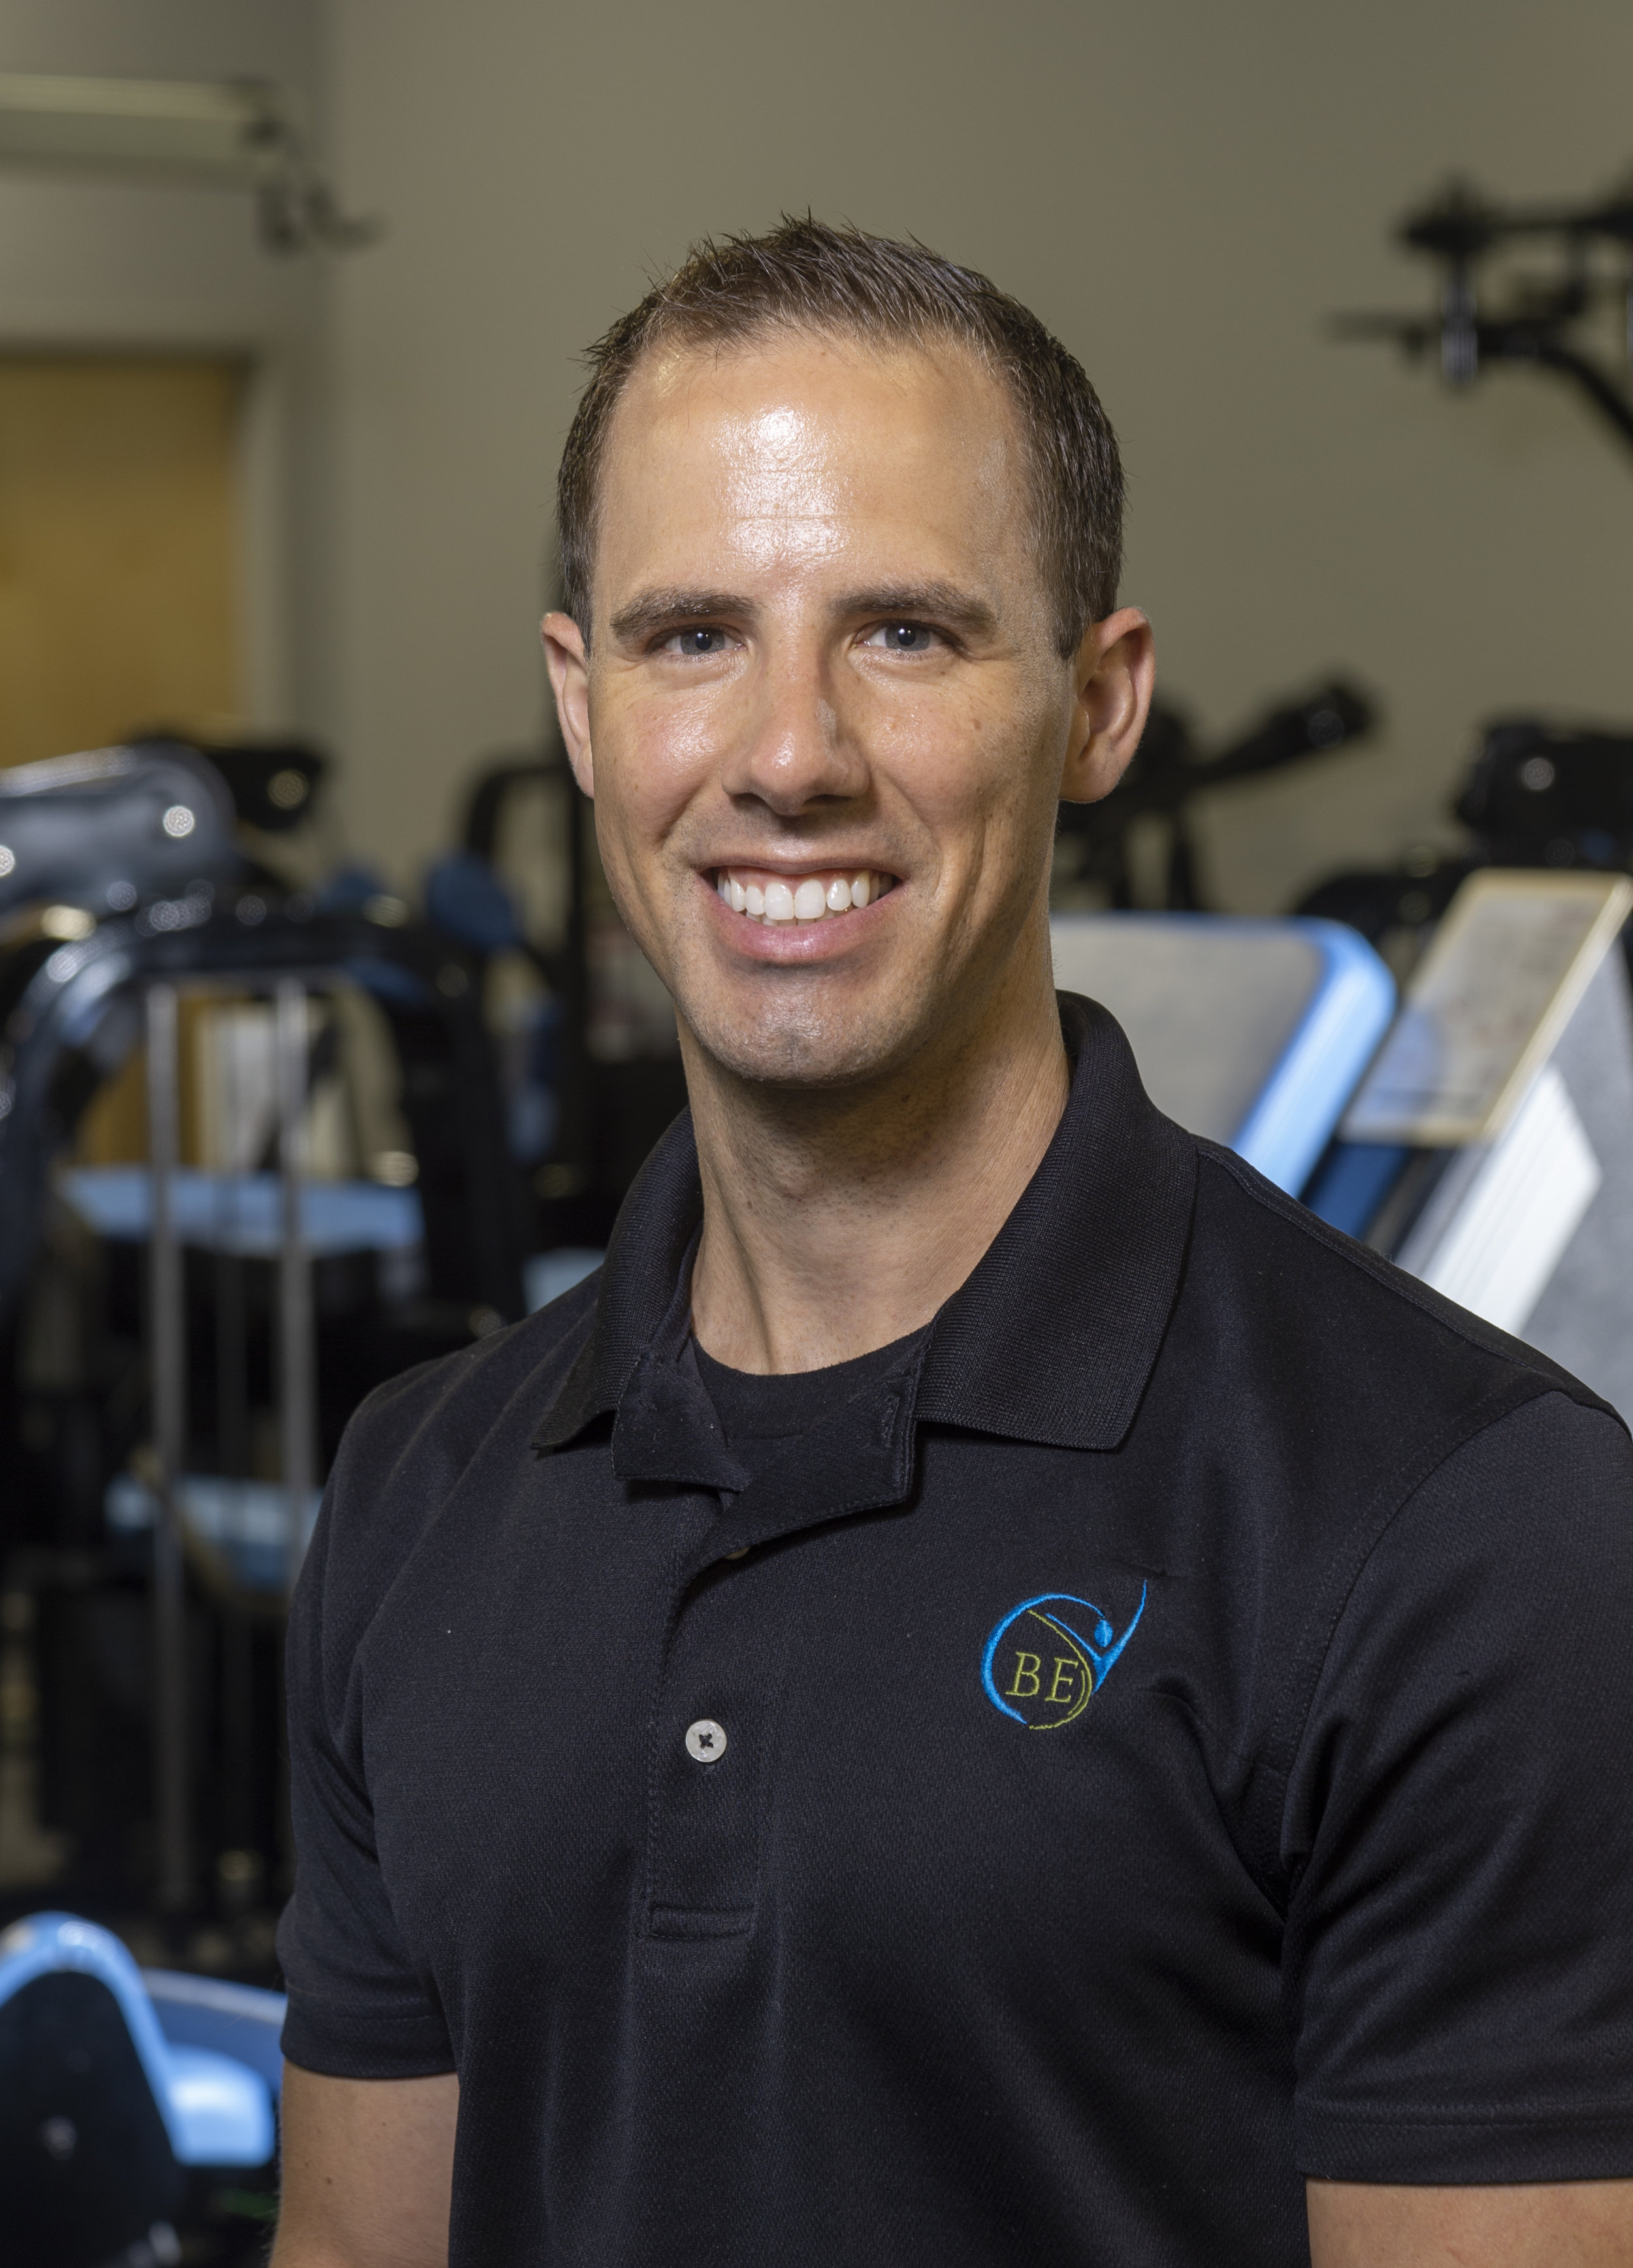 Mark Radio, Body Elite GM and Personal Trainer